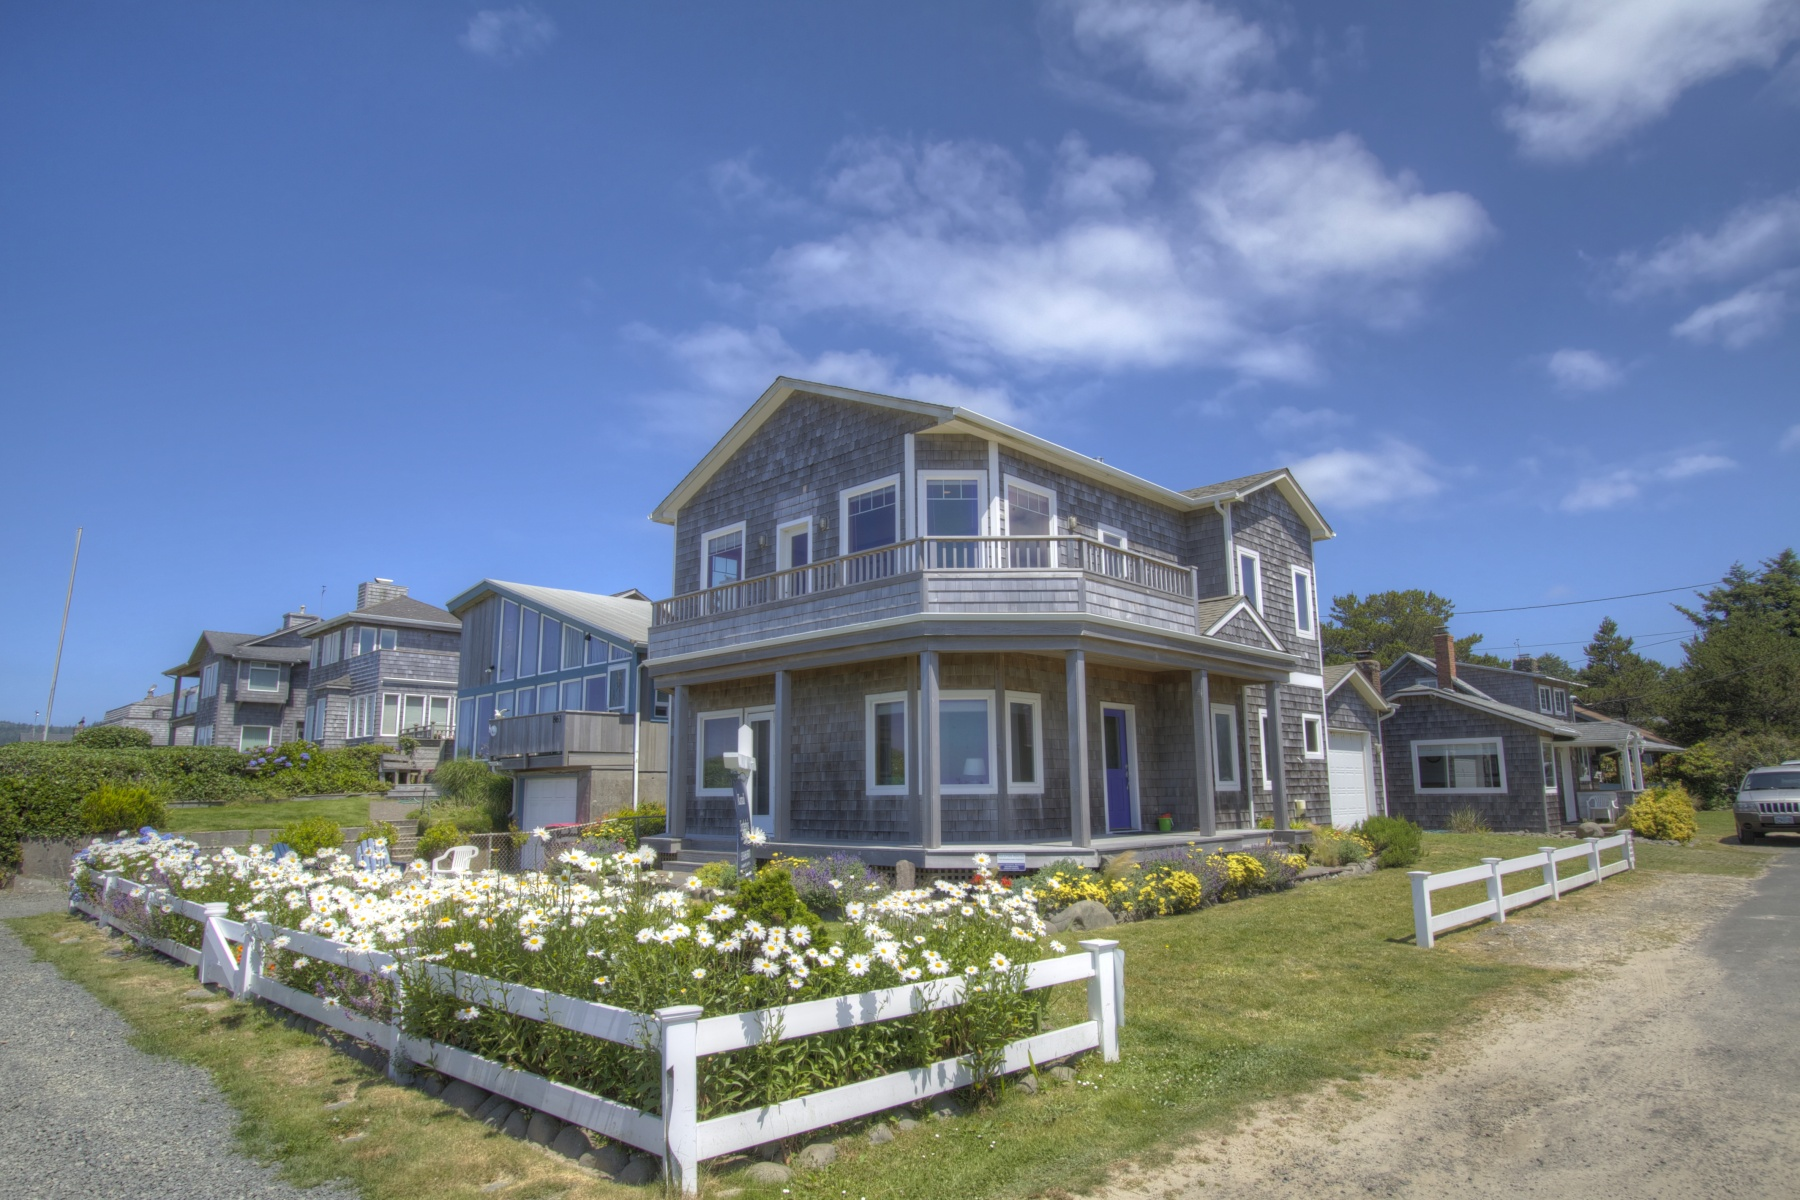 Single Family Home for Sale at Oceanfront Cannon Beach Home 188 Van Buren St Cannon Beach, Oregon, 97110 United States